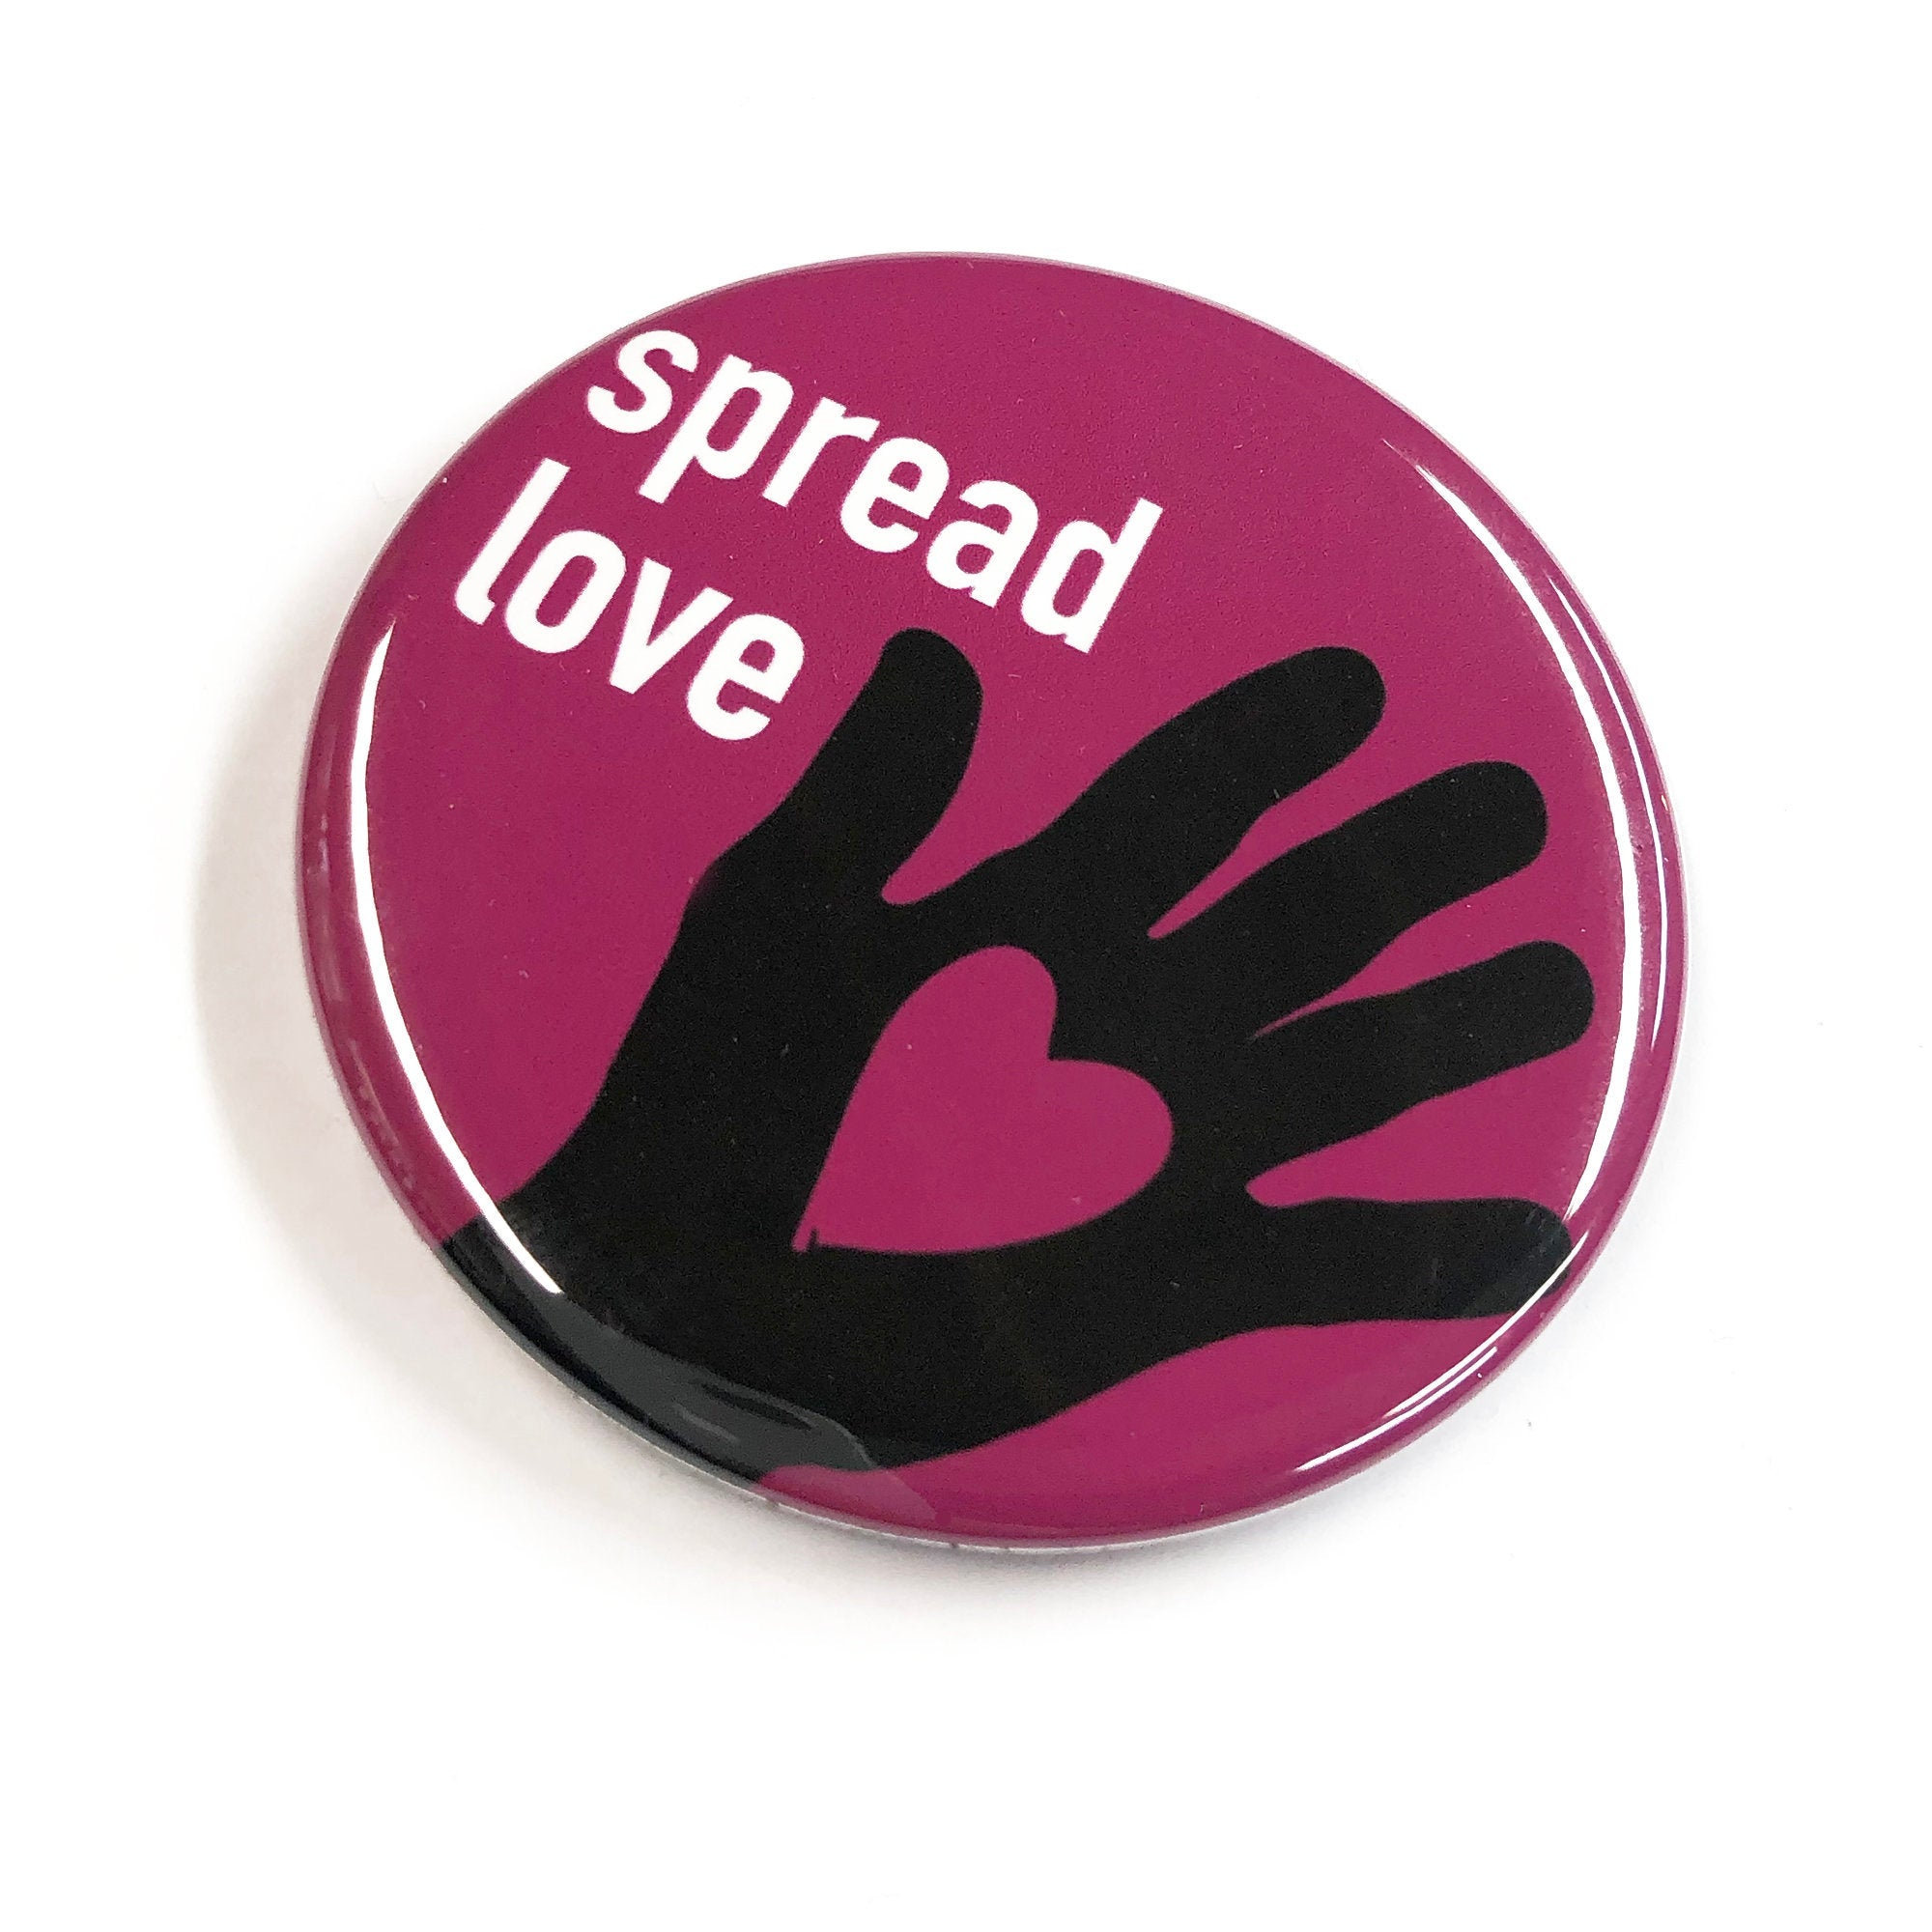 Spread Love Magnet, Pin Back Button or Pocket Mirror